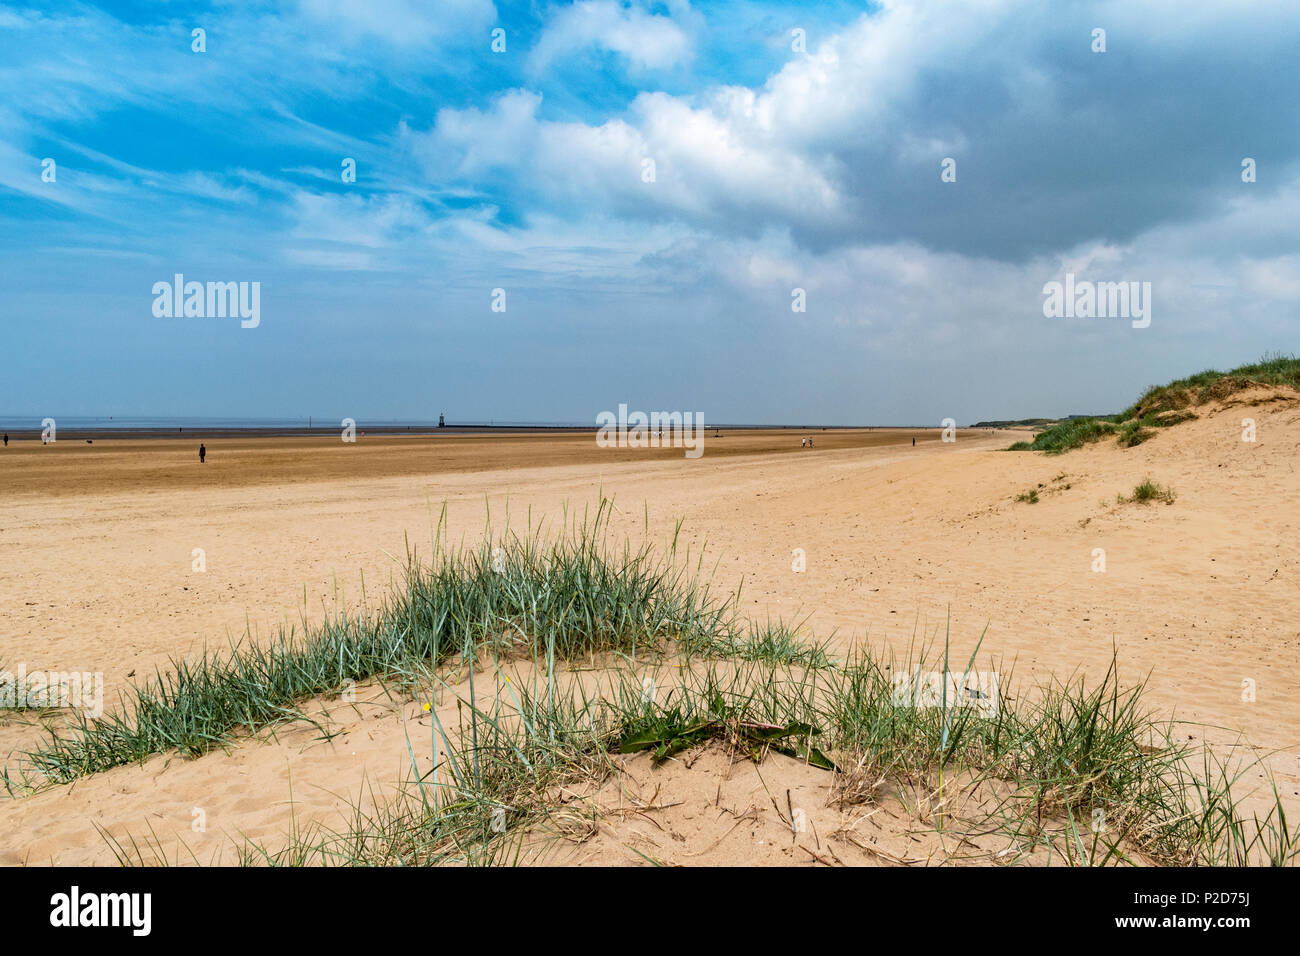 crosby beach near liverpool, merseyside, england, britain, uk. - Stock Image